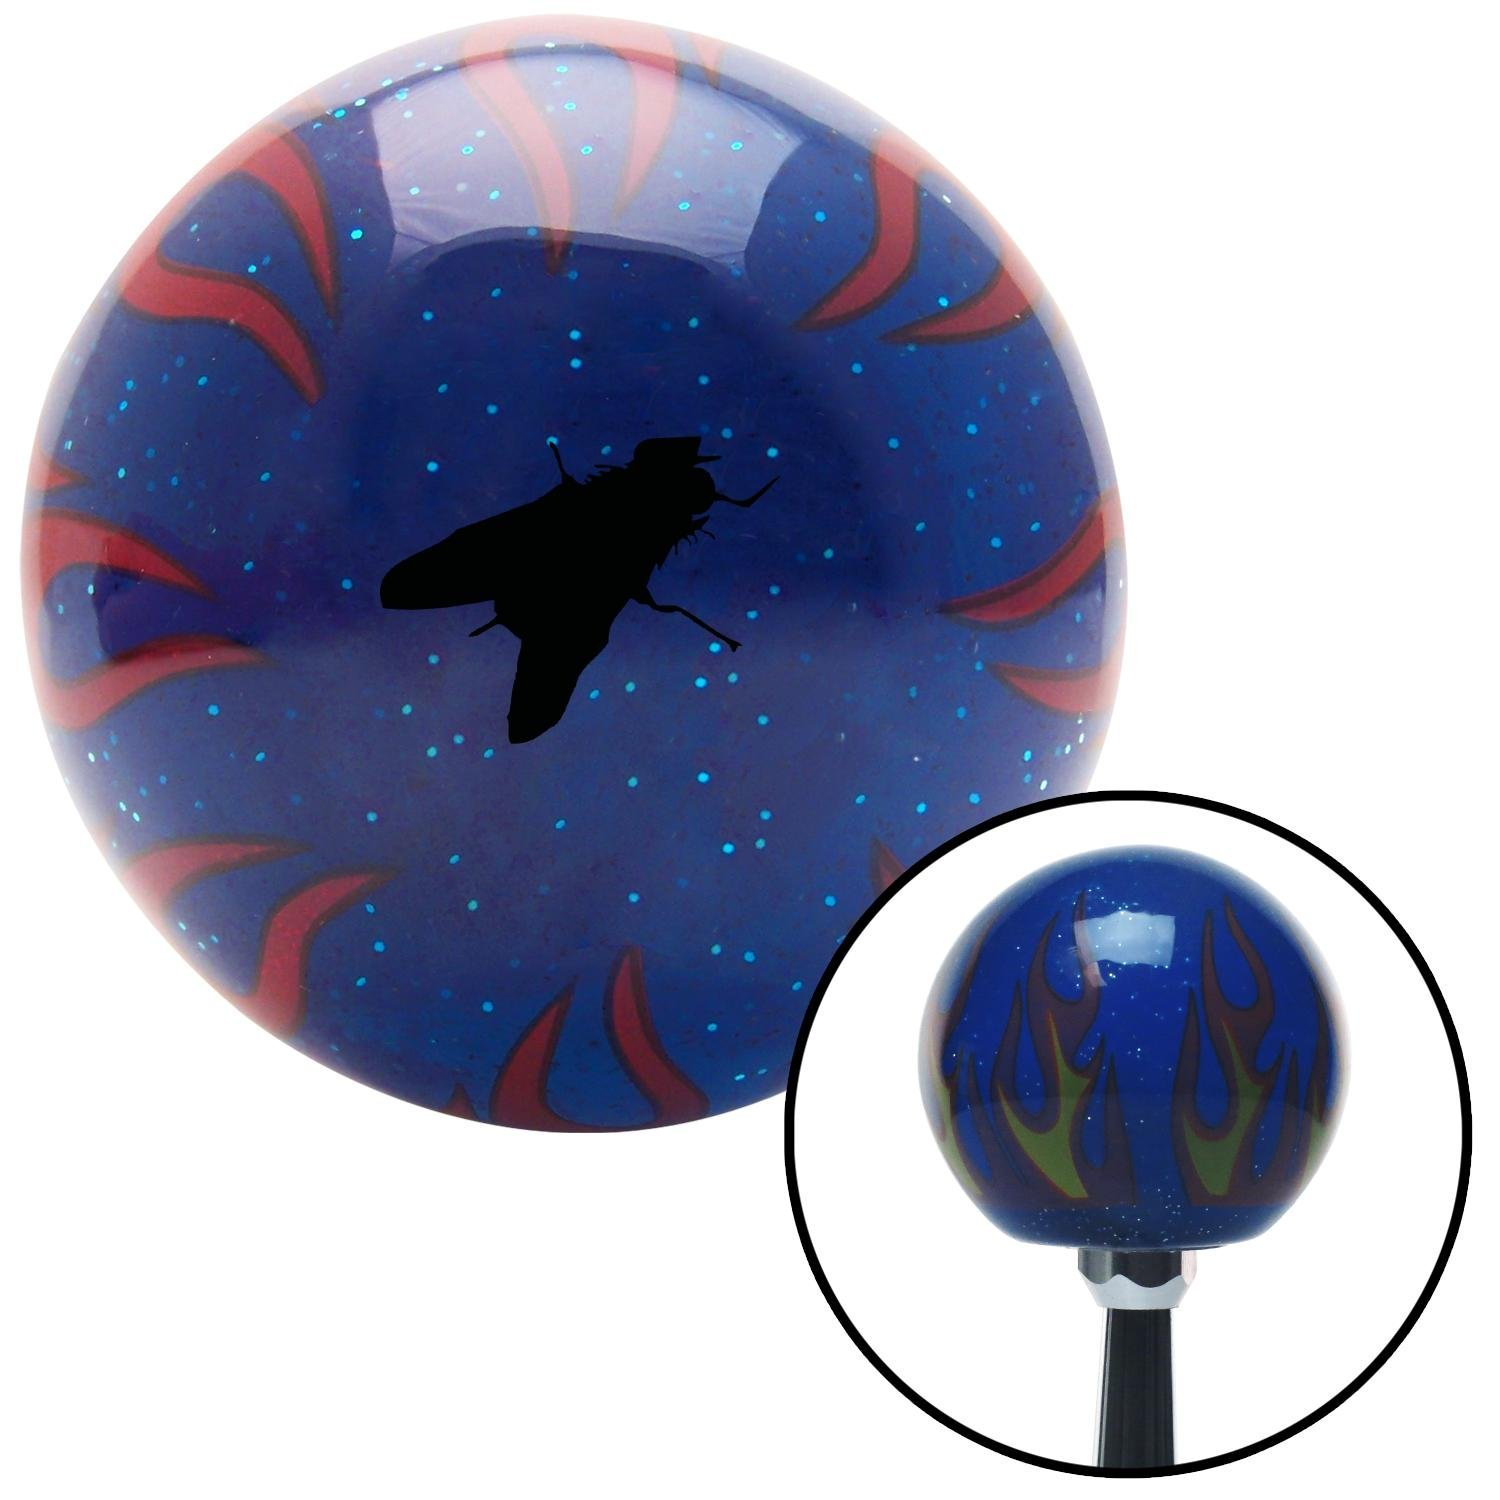 American Shifter 297640 Shift Knob Black Fly Blue Flame Metal Flake with M16 x 1.5 Insert